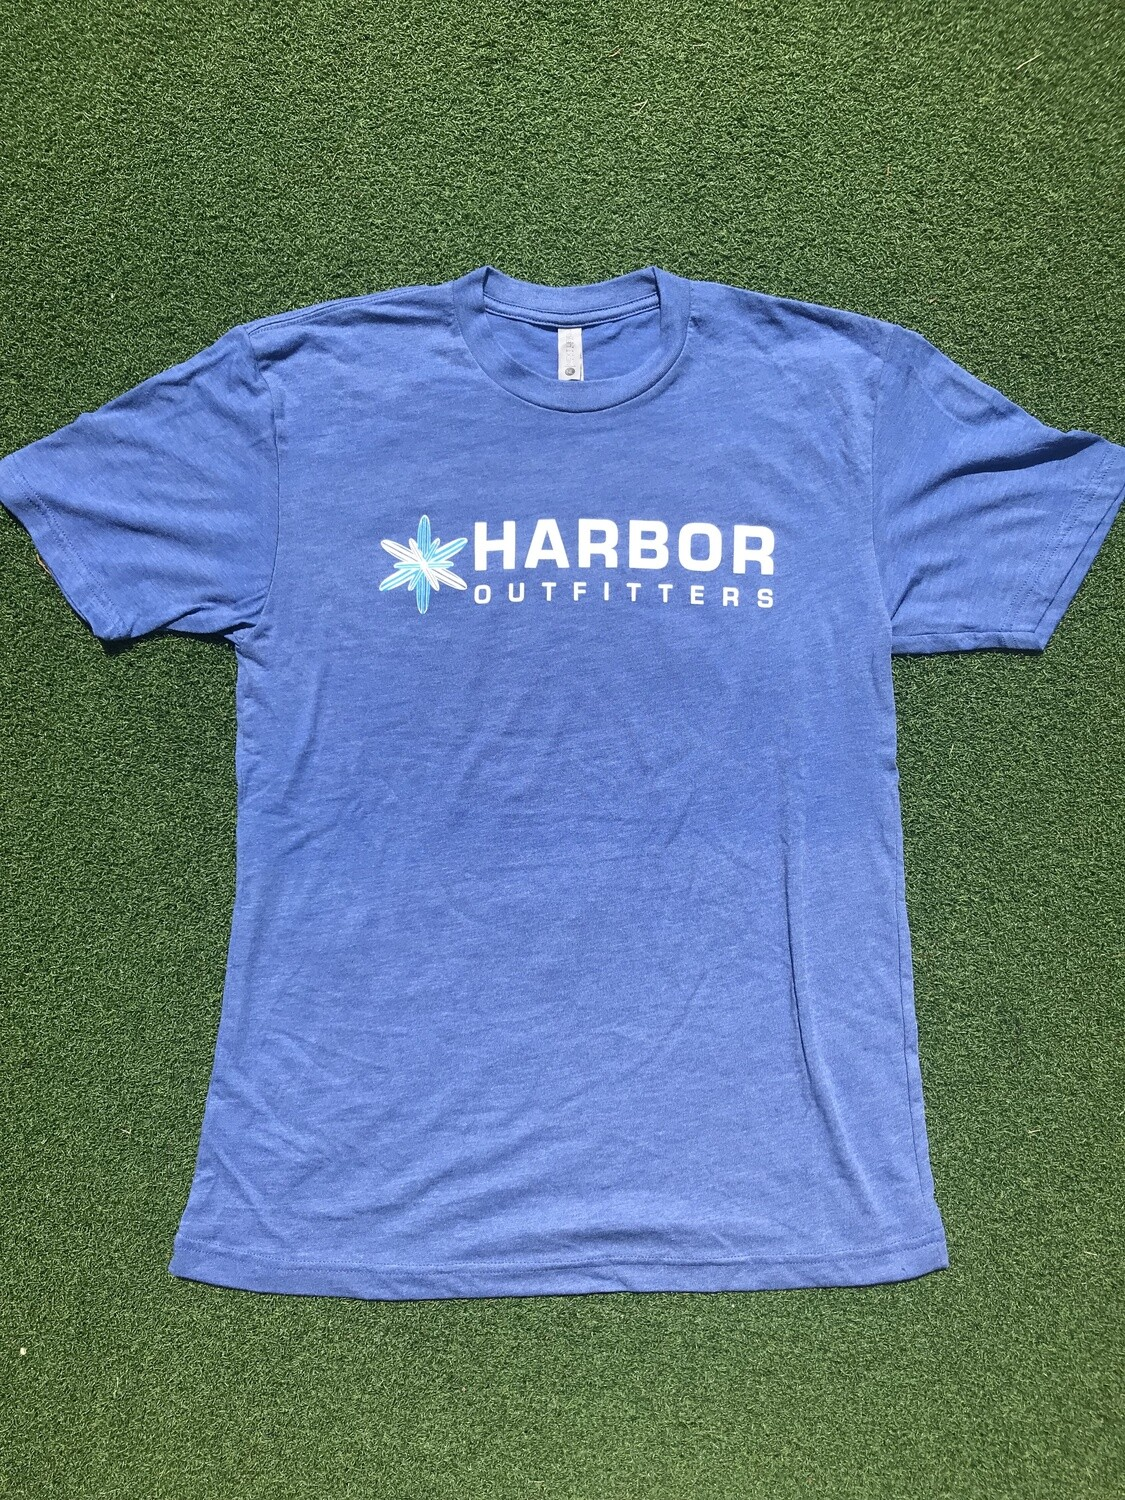 Soft Harbor Outfitters Tee-Shirt